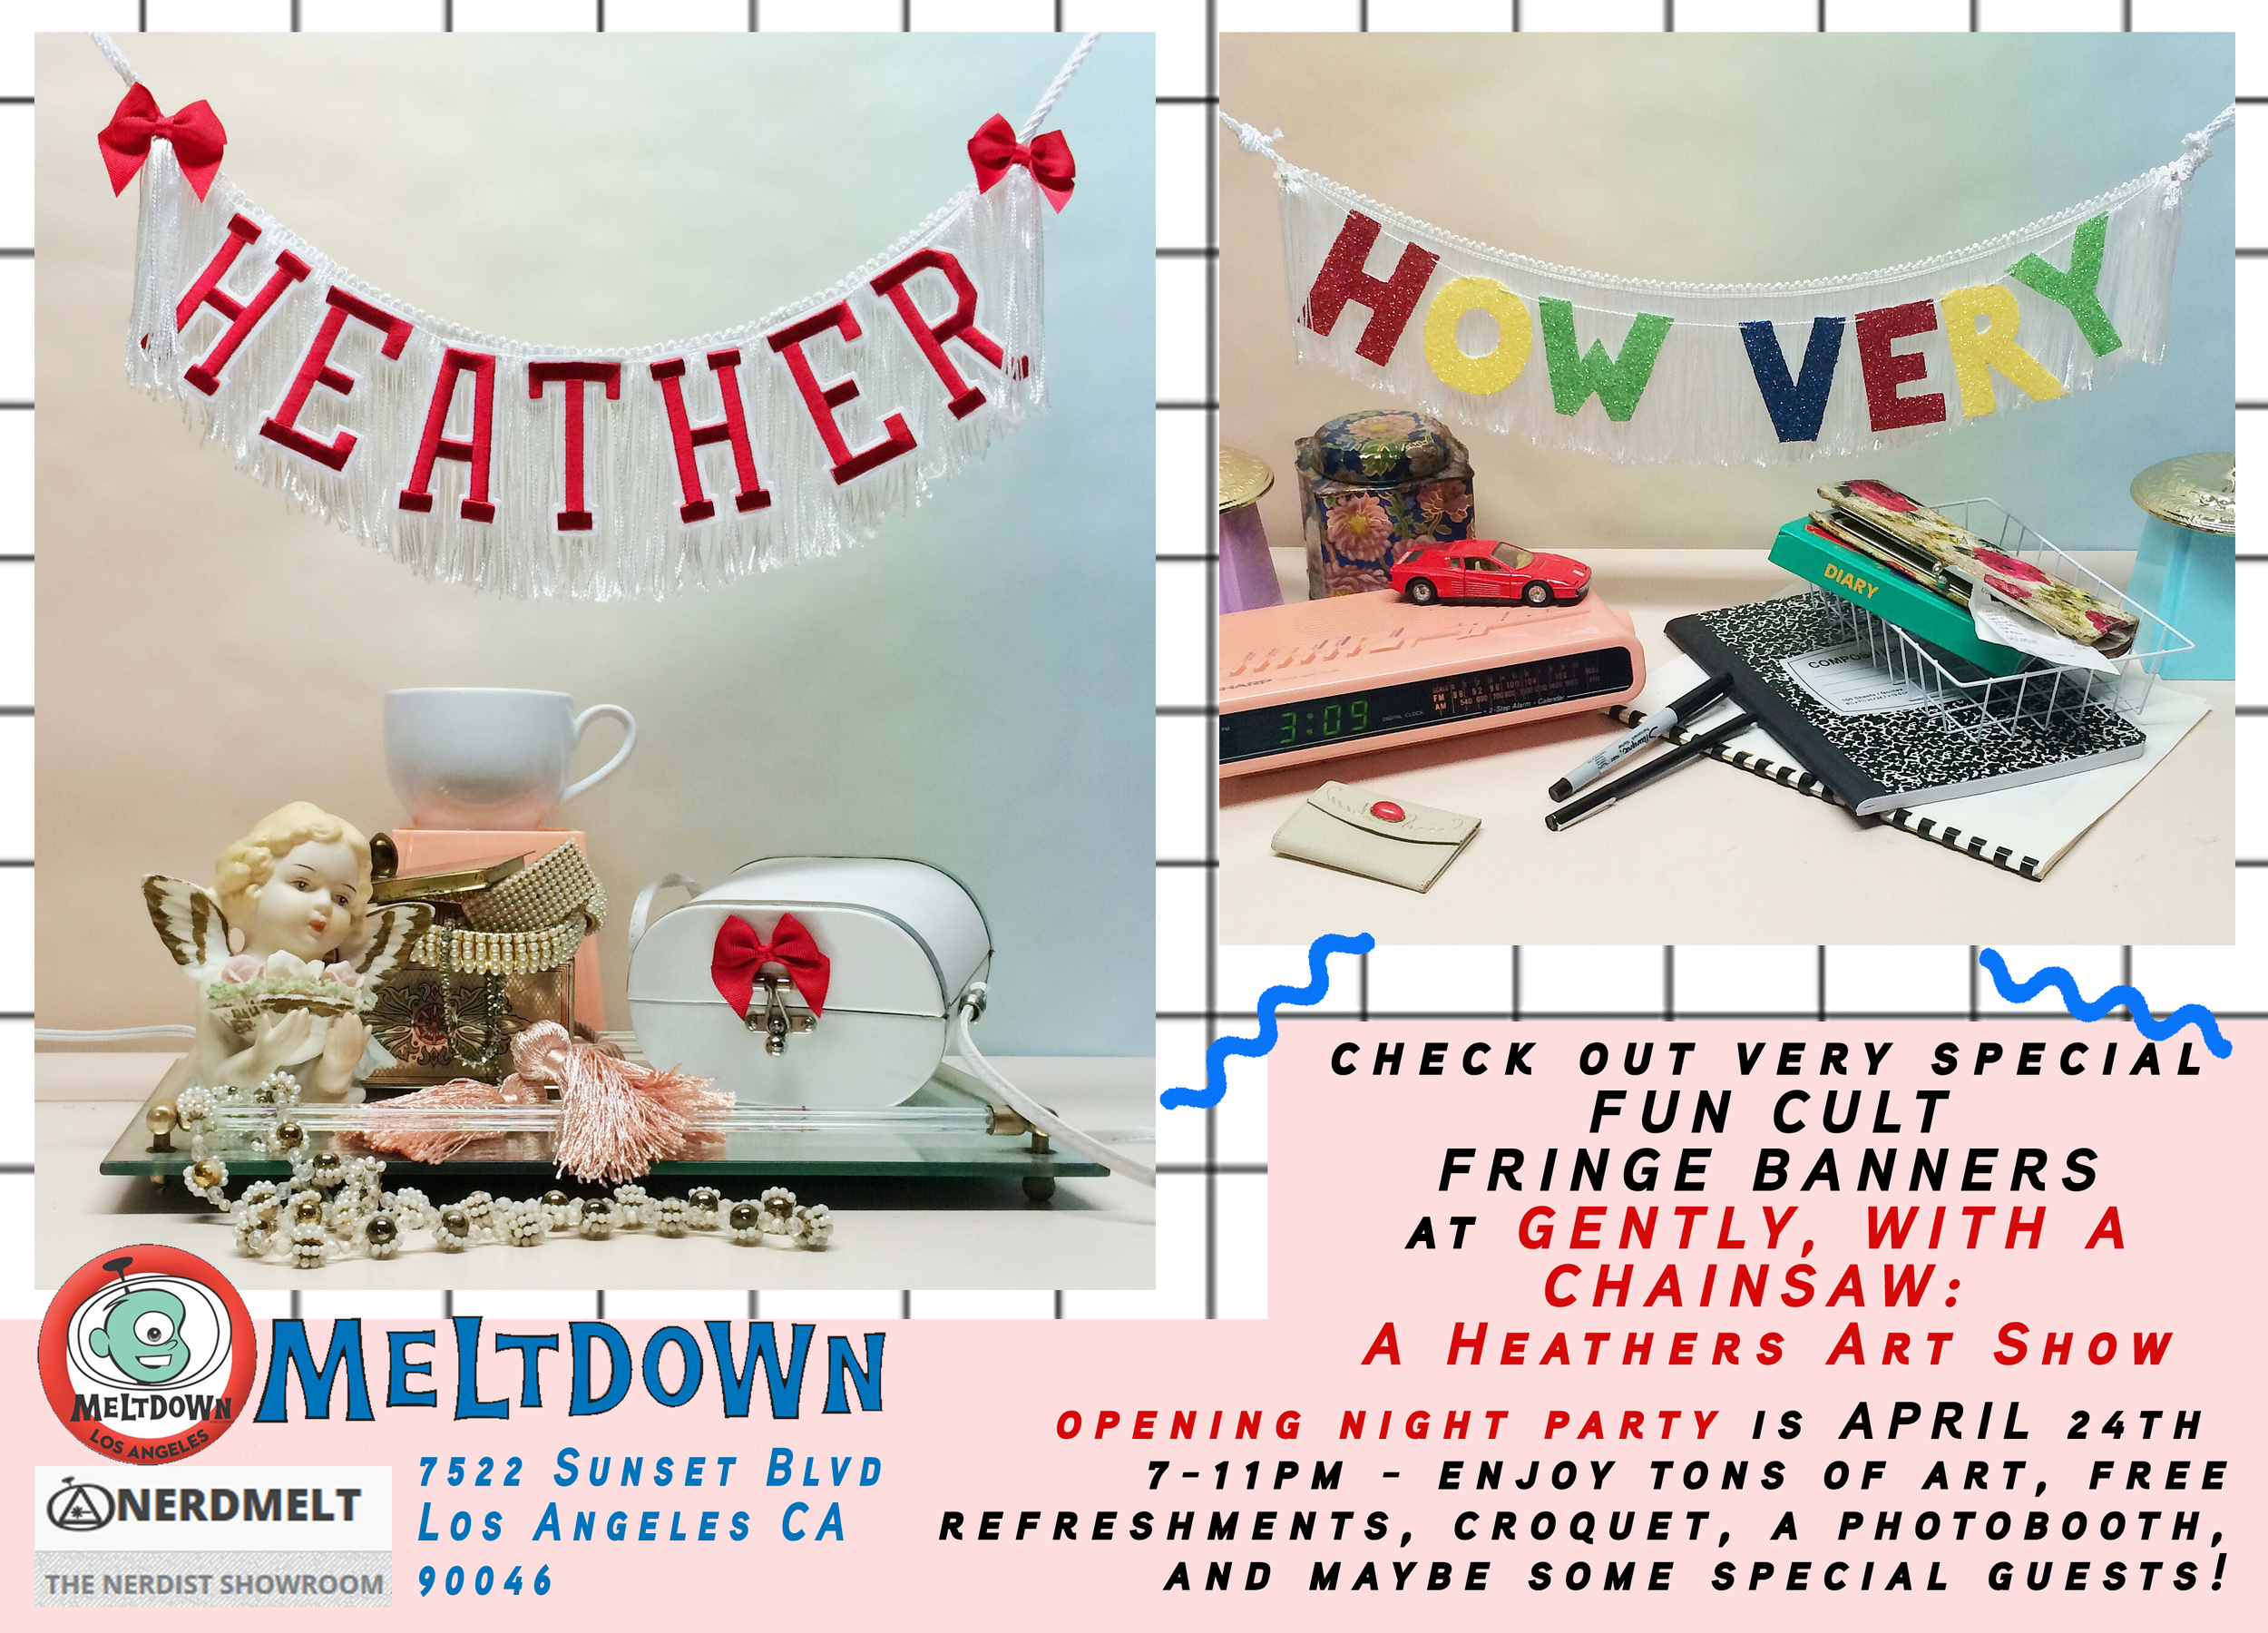 FUN CULT was part of a show curated for MELTDOWN inspired by HEATHERS